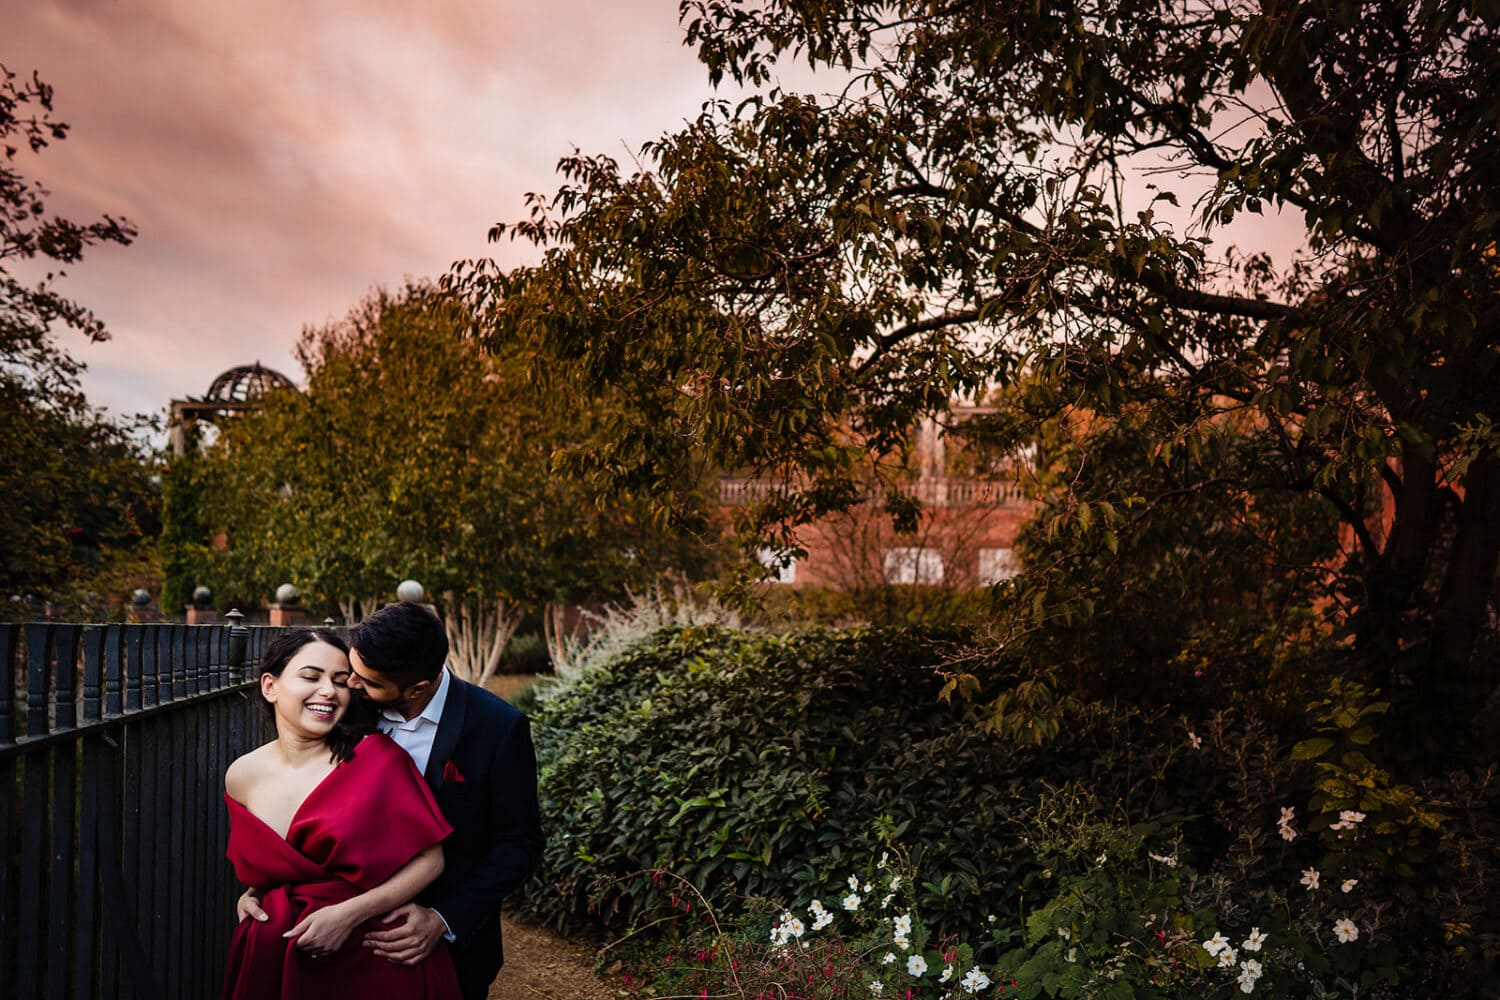 Asian Couple smile hugging with sunset skies in the gardens of the Hampstead Pergola